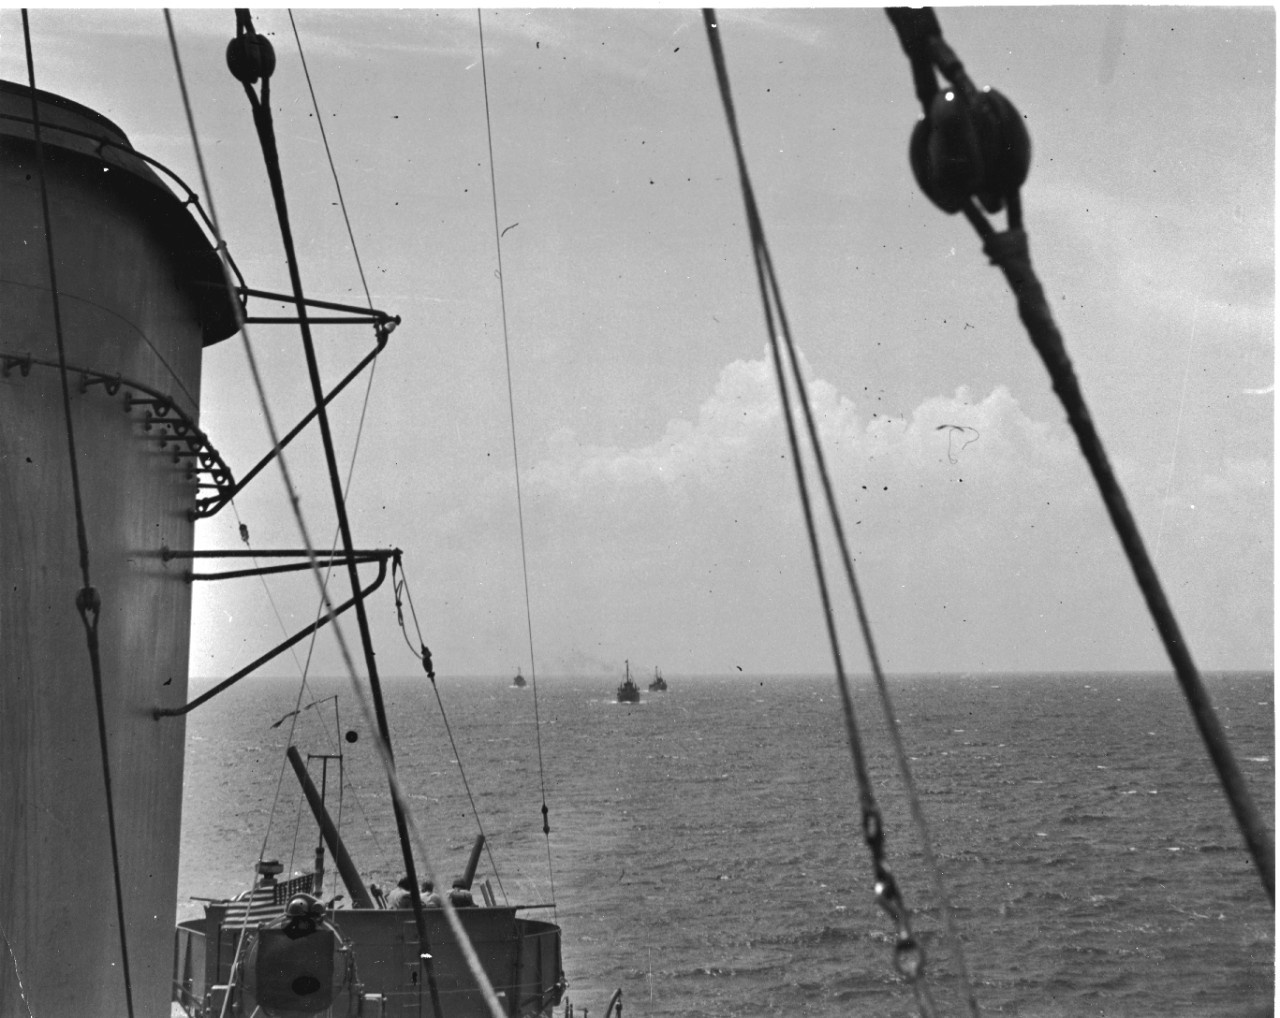 As seen from Helm's bridge, beyond her colors and commissioning pennant, can be seen YP-239, YP-284, and YP-346, bound for the Solomons. Of that little trio of former tuna clippers, two – YP-346 and YP-284 – would be sunk by Japanese destroyers, the former of 9 September 1942 and the latter on 25 October 1942, in the bitter fighting for Guadalcanal. (U.S. Navy Photograph 80-G-32146, National Archives and Records Administration, Still Pictures Division, College Park, Md.)